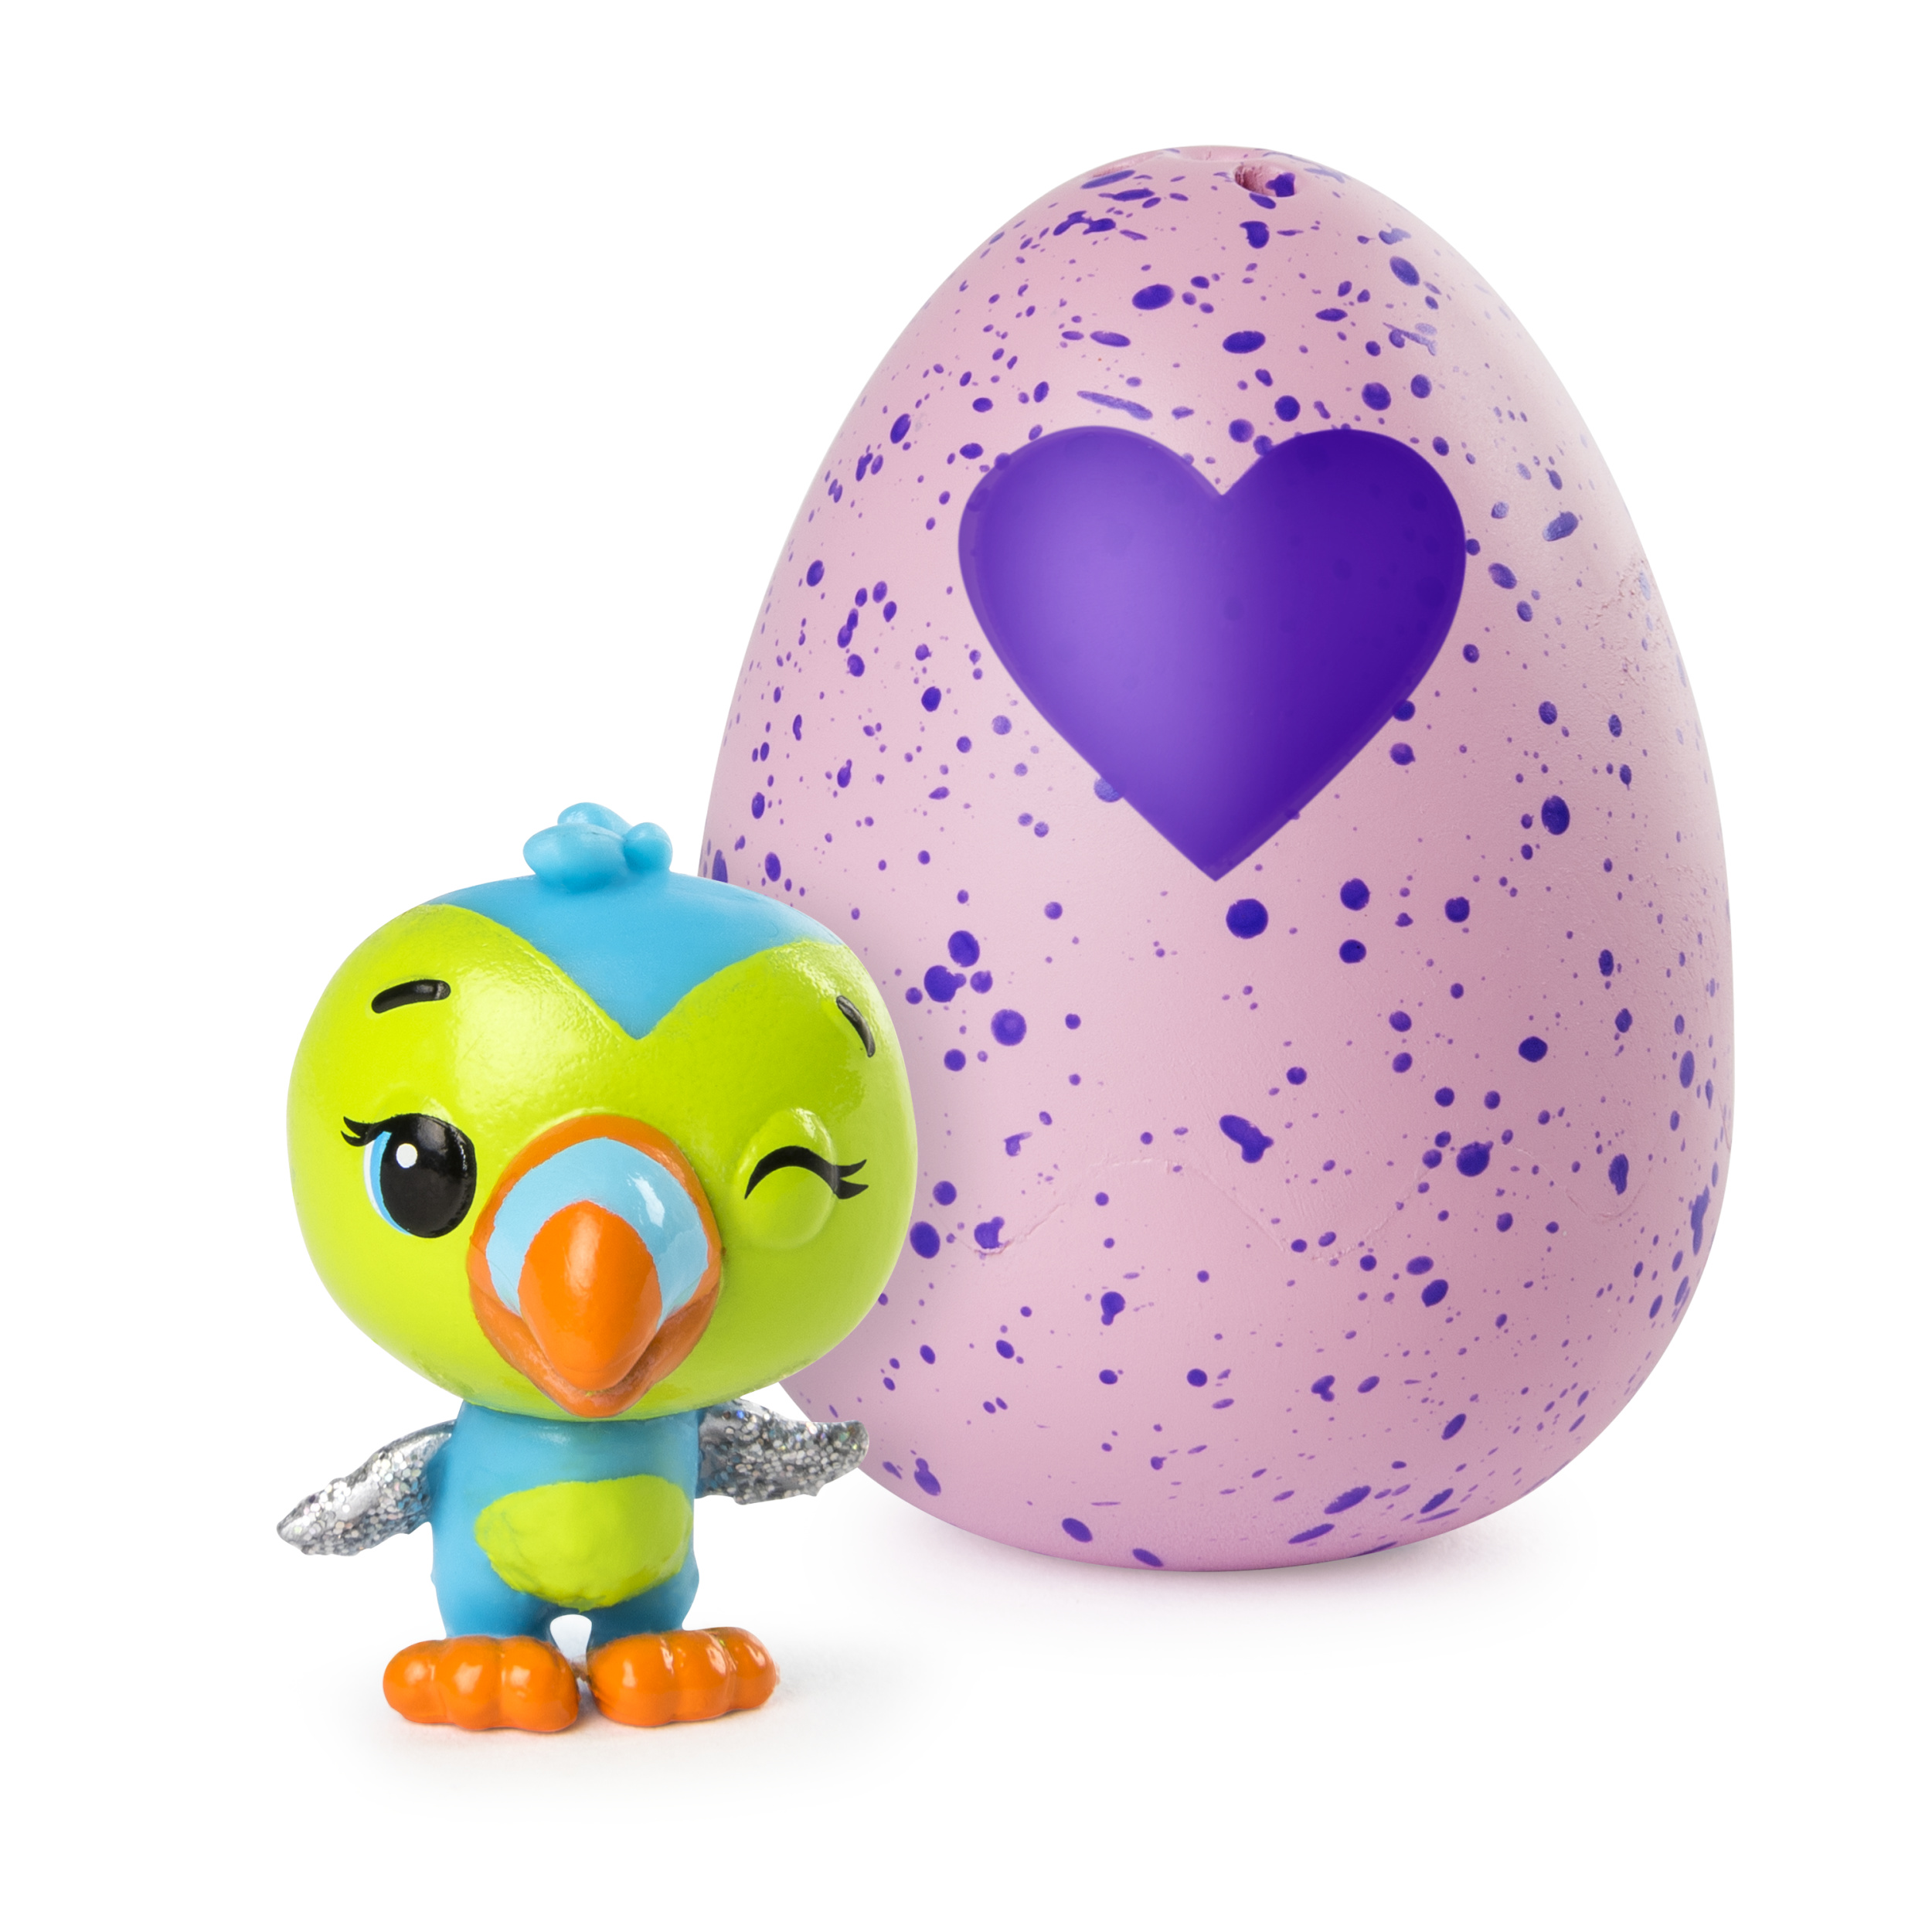 Hatchimals CollEGGtibles Season 2 - 1-Pack (Styles & Colors May Vary) by Spin Master